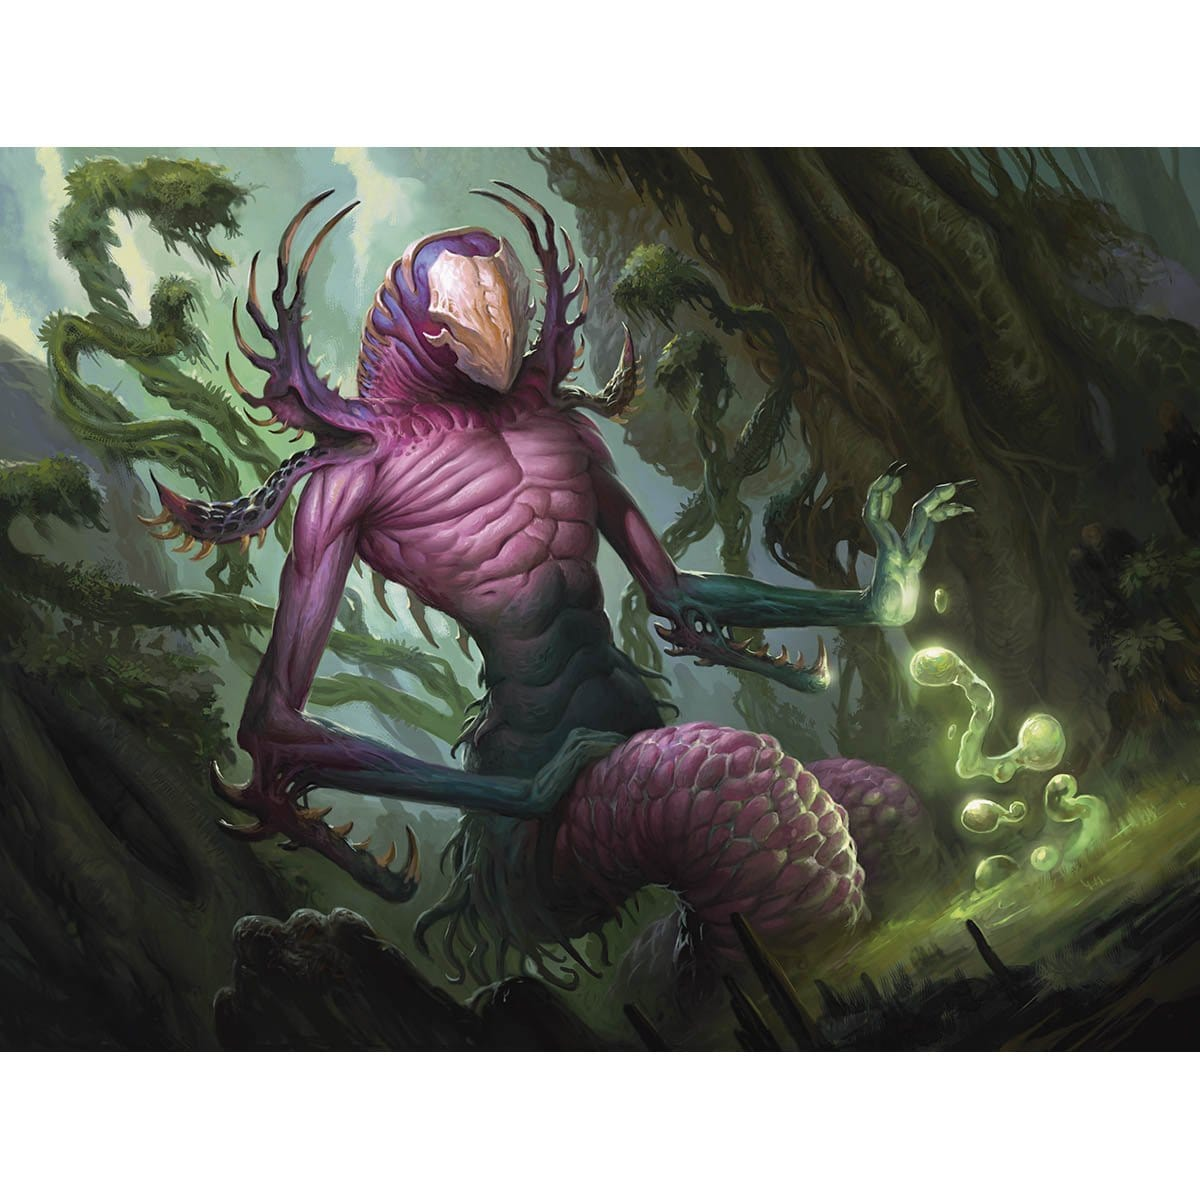 Mire's Malice Print - Print - Original Magic Art - Accessories for Magic the Gathering and other card games